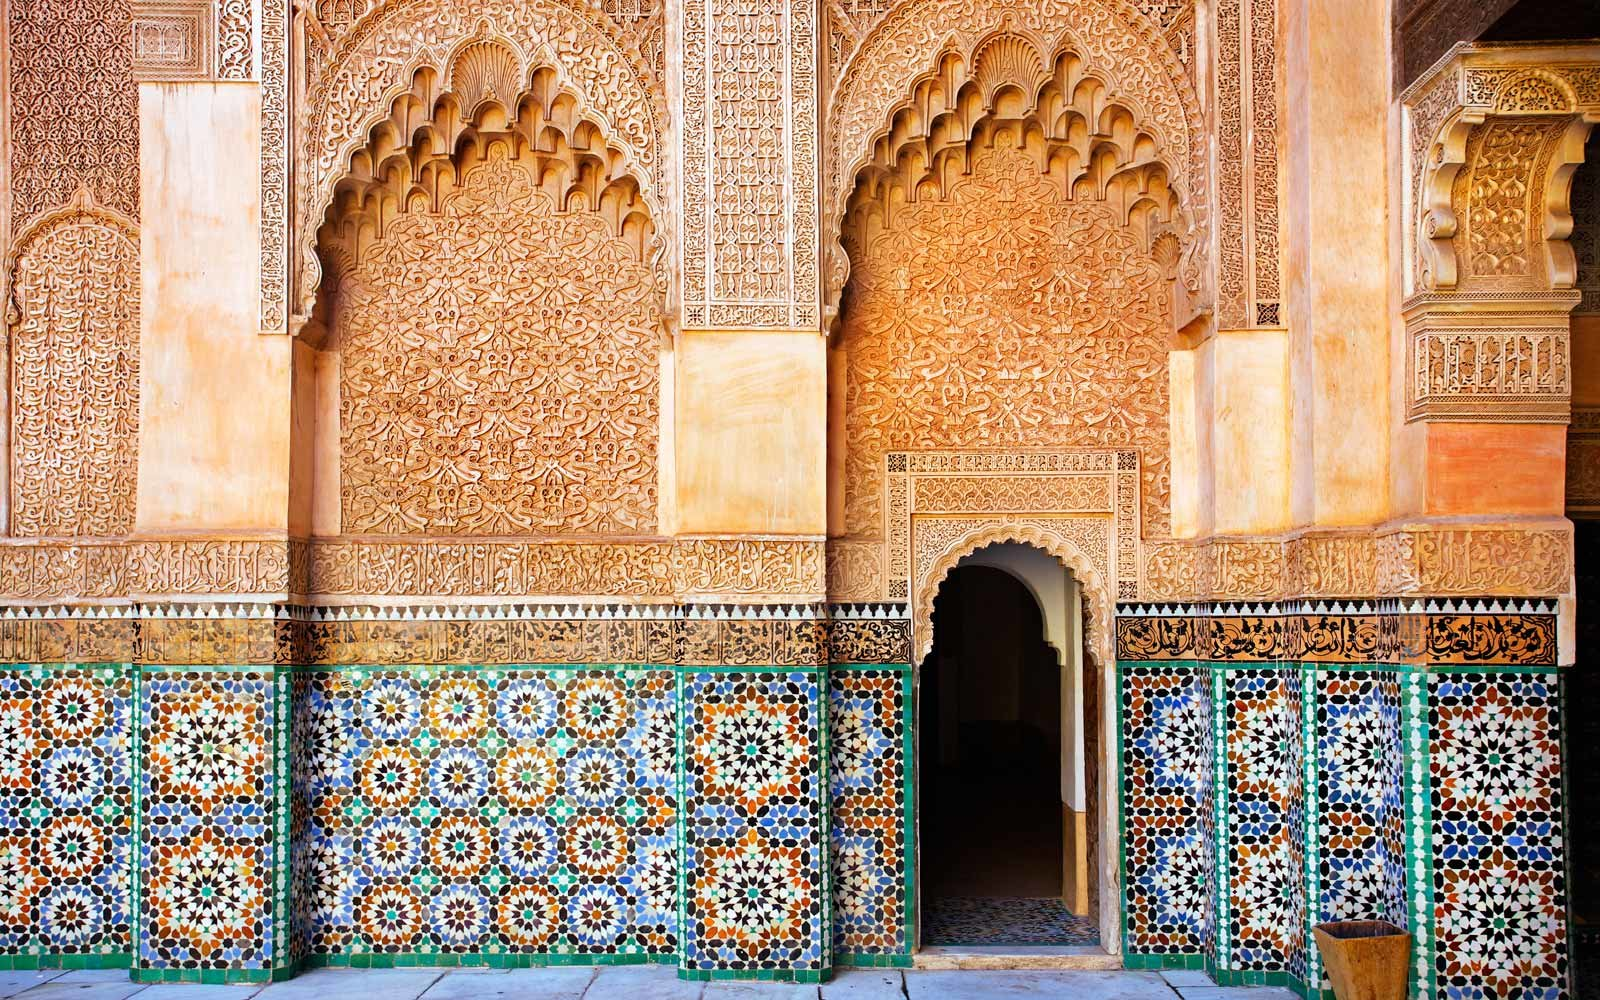 Find Serenity in Morocco